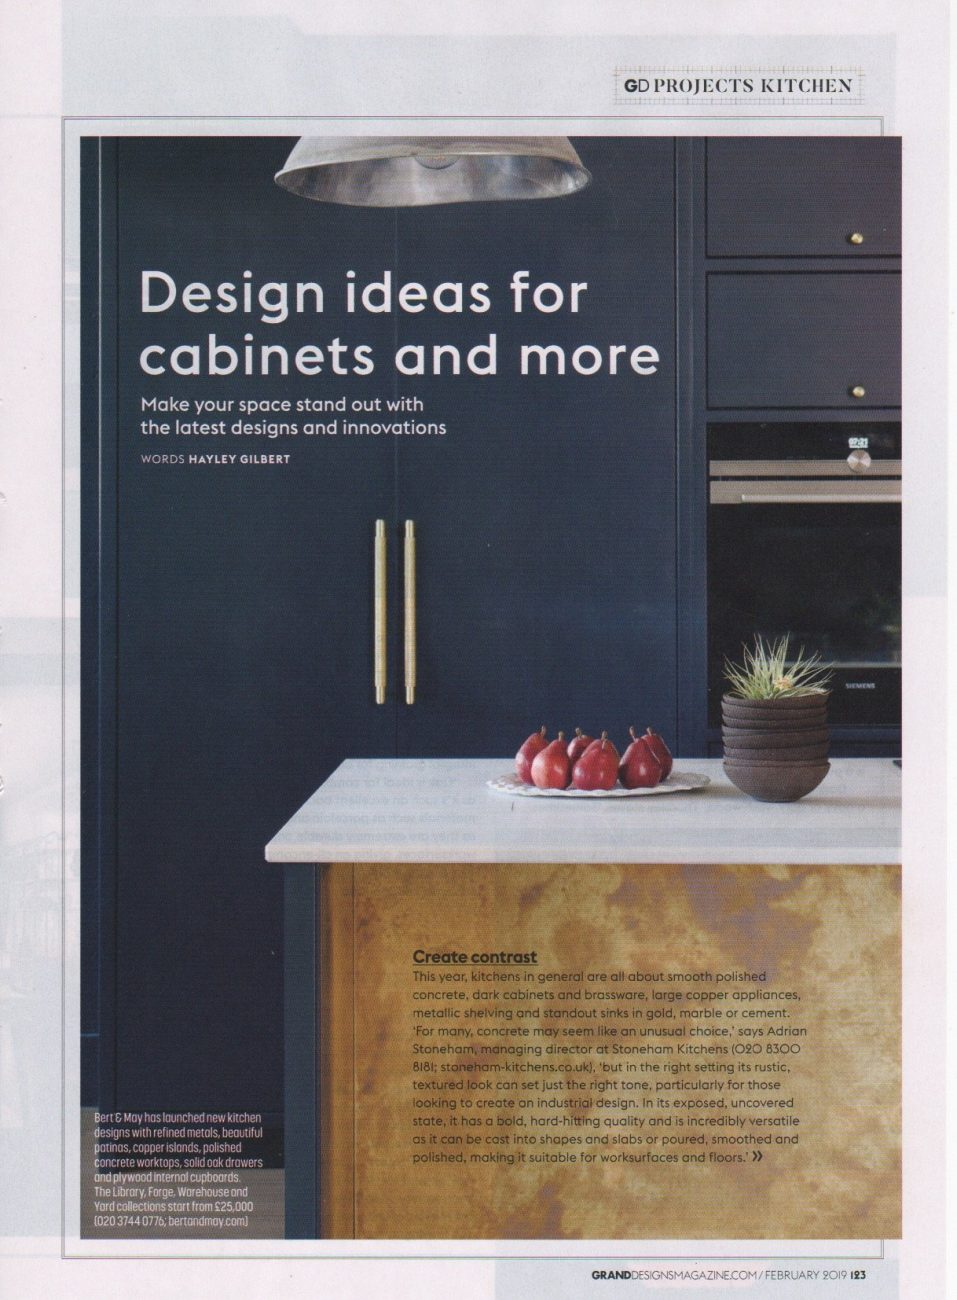 Part 1 of an article in Grand Designs magazine on design ideas for cabinets